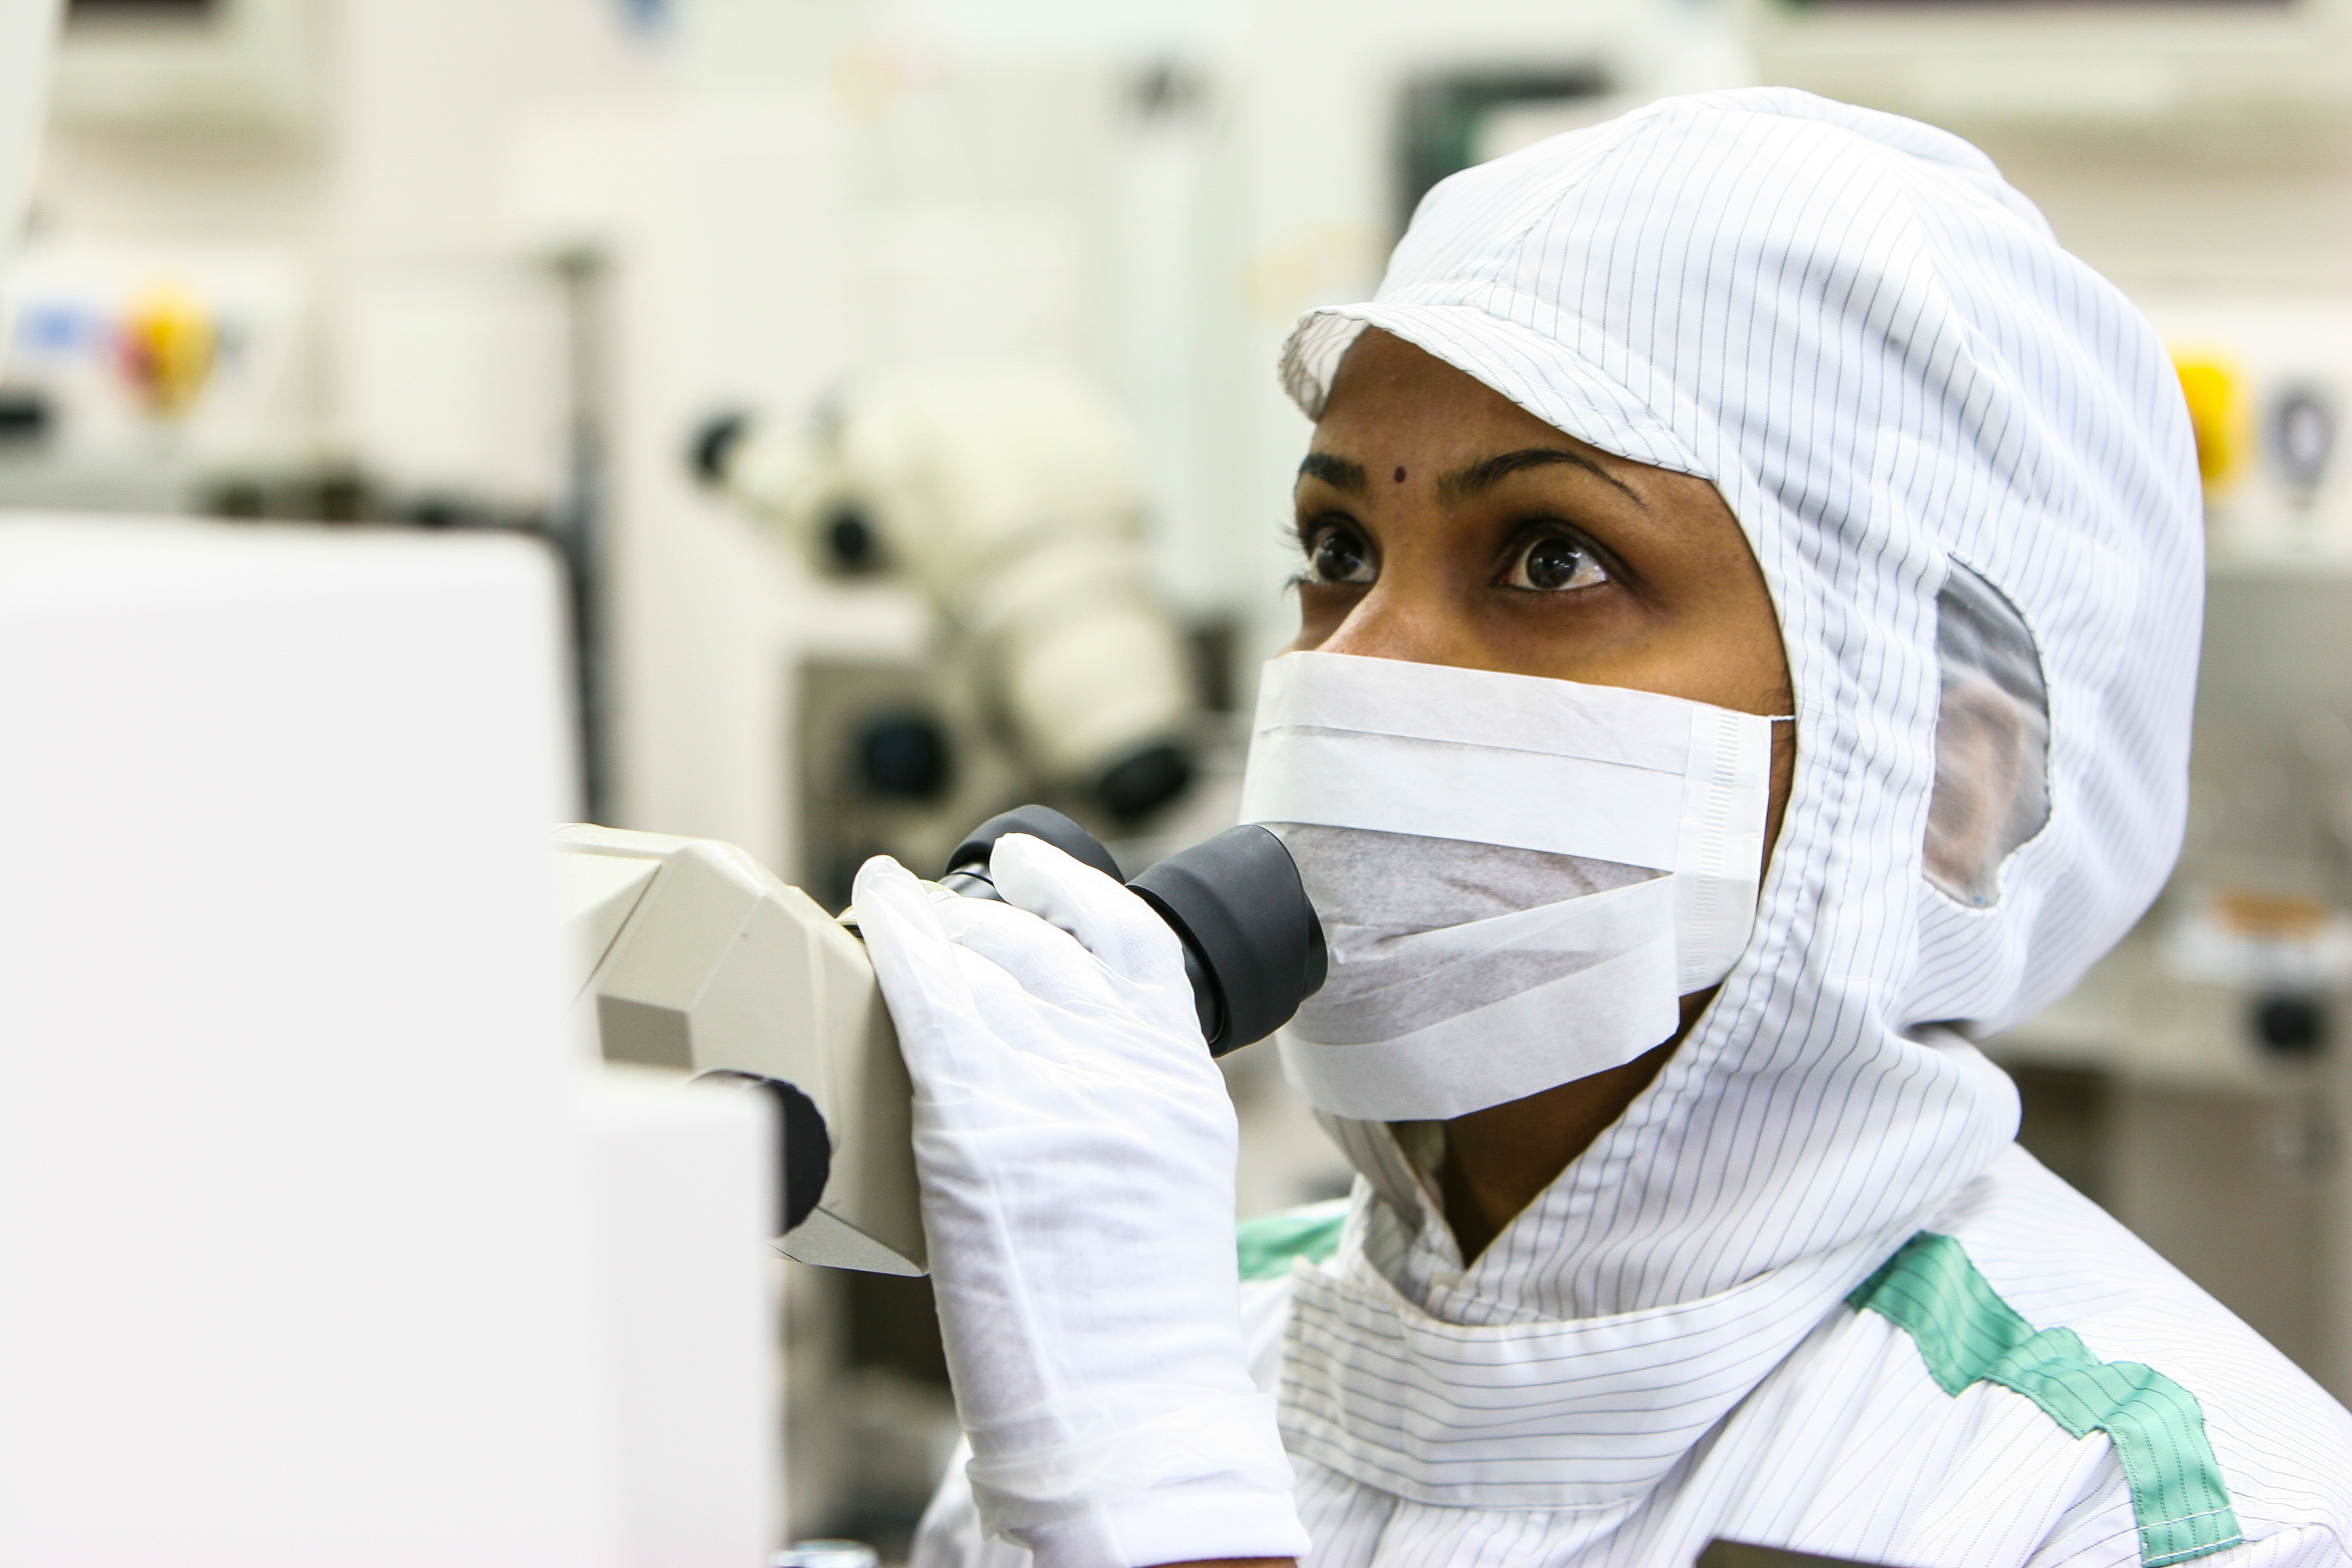 Image of female scientist looking at microscope